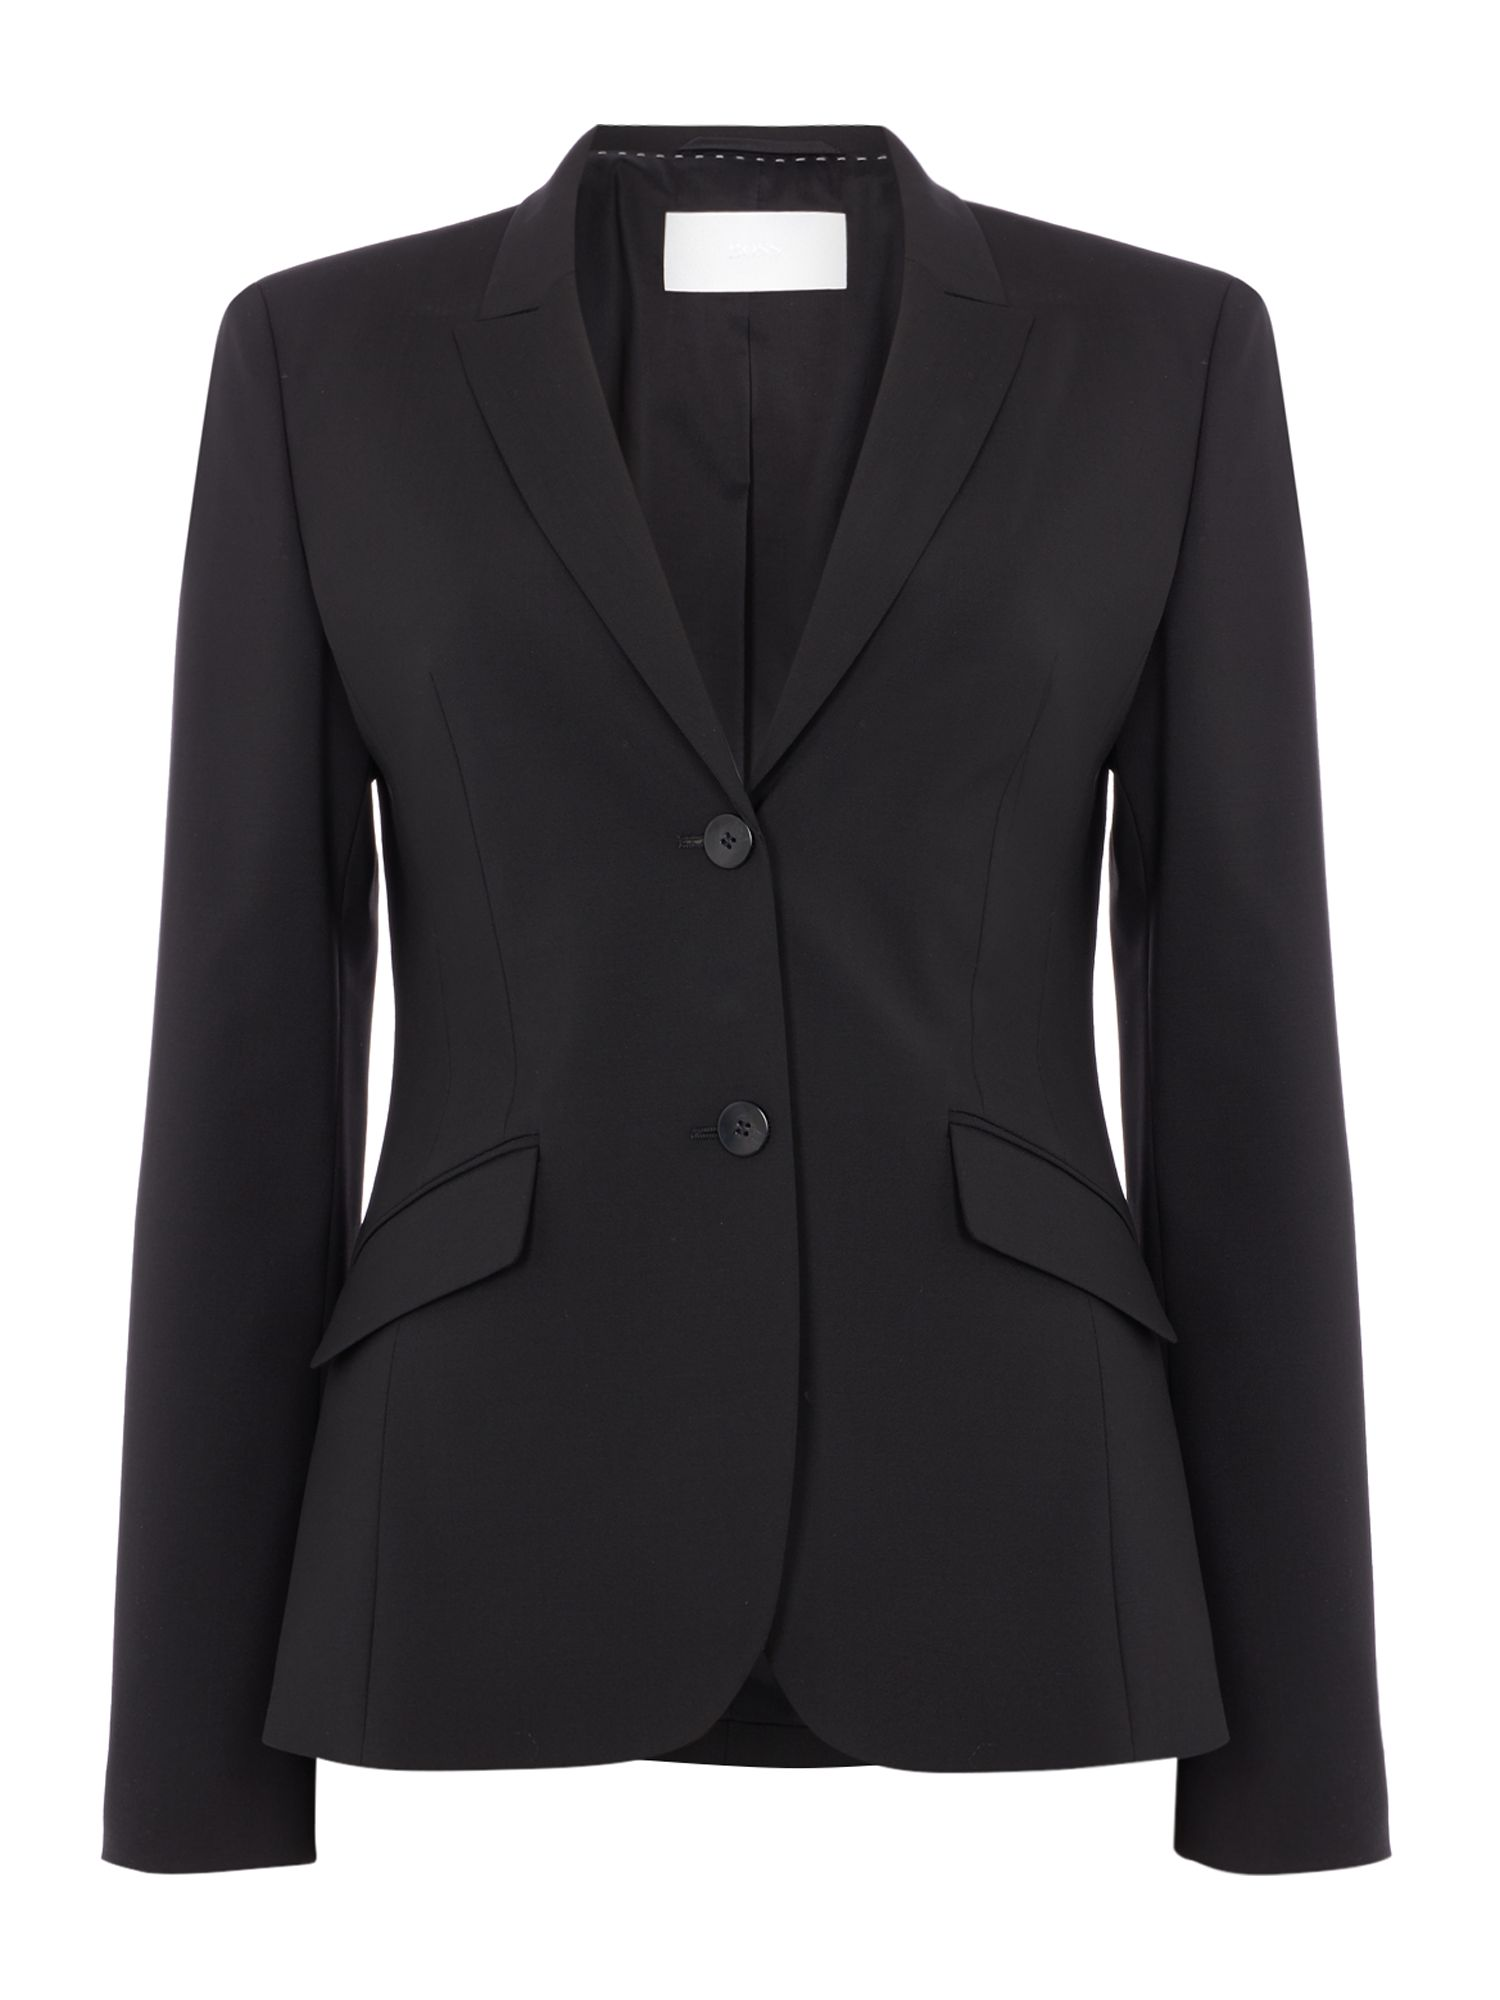 Hugo Boss Julea Wool Strtch 2 Btn 62cm Suit Jacket Black